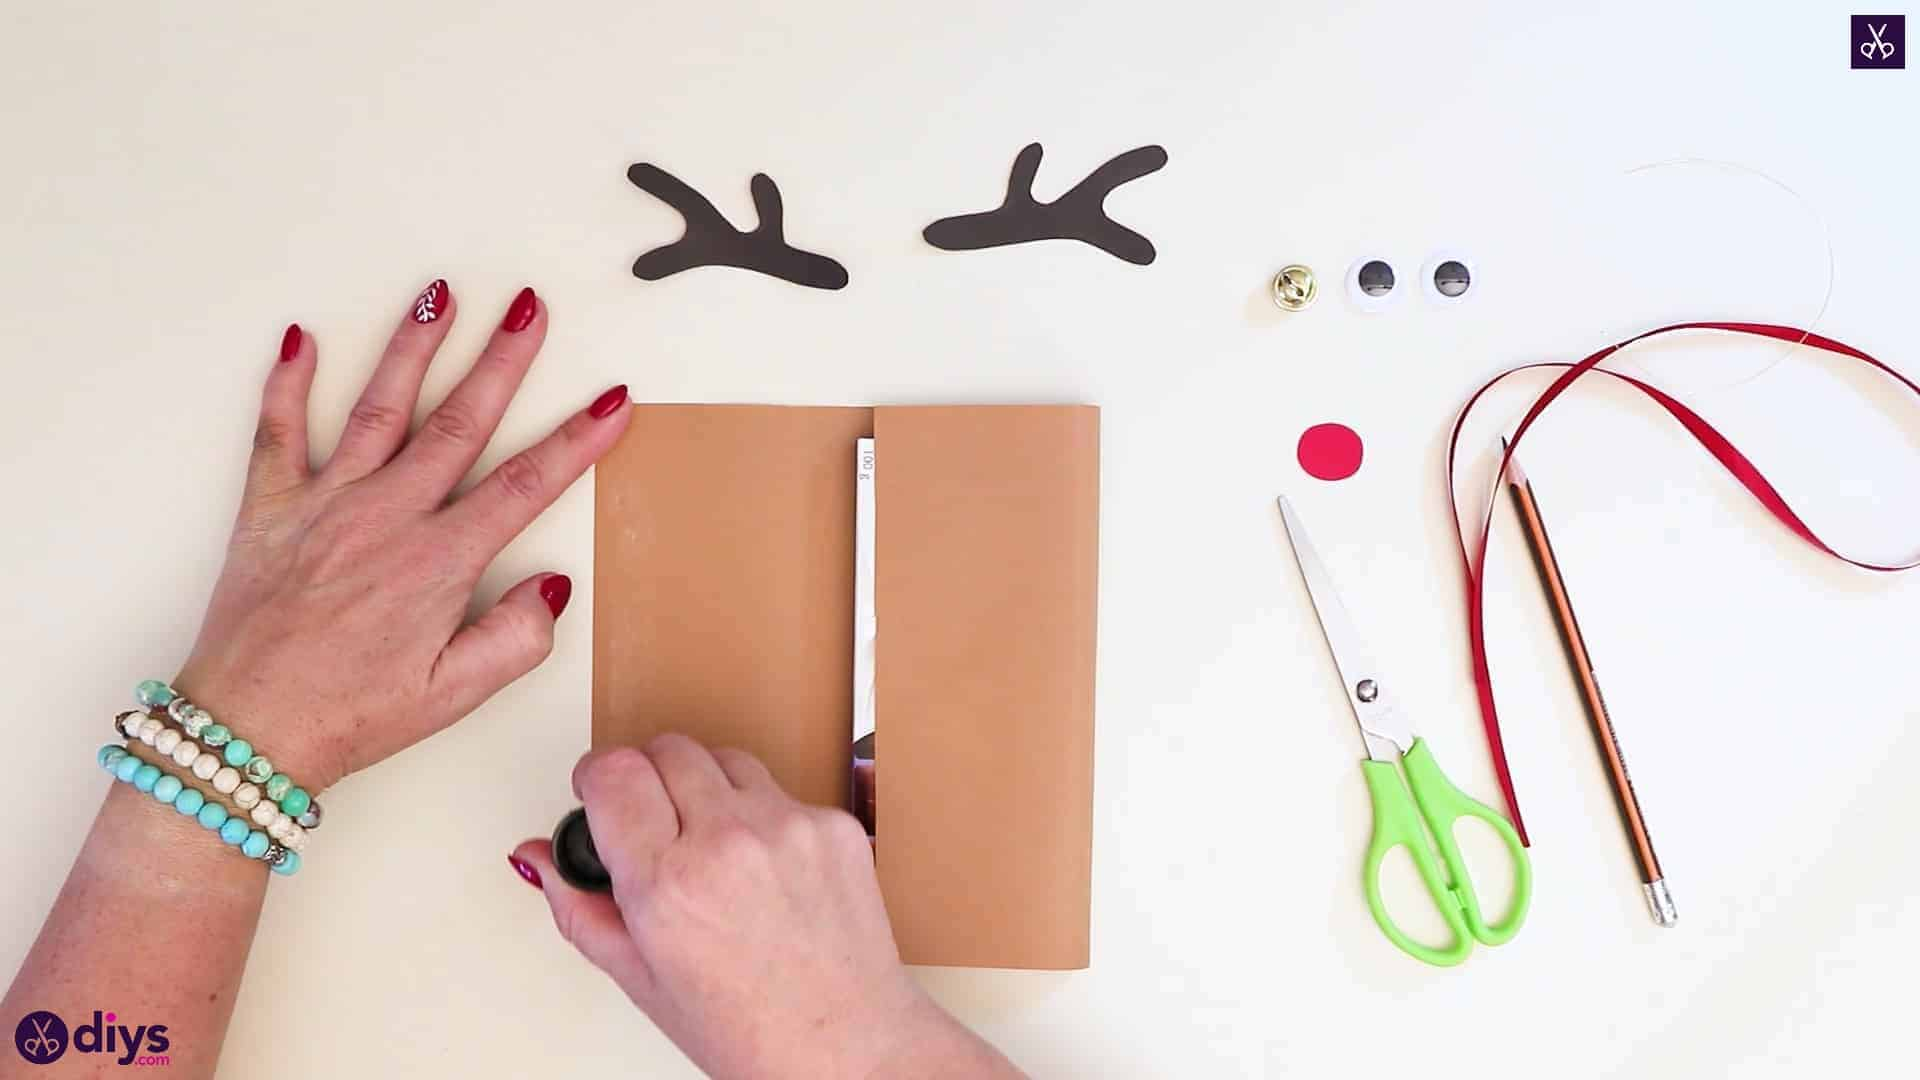 Diy reindeer gift wrap for christmas step 6a